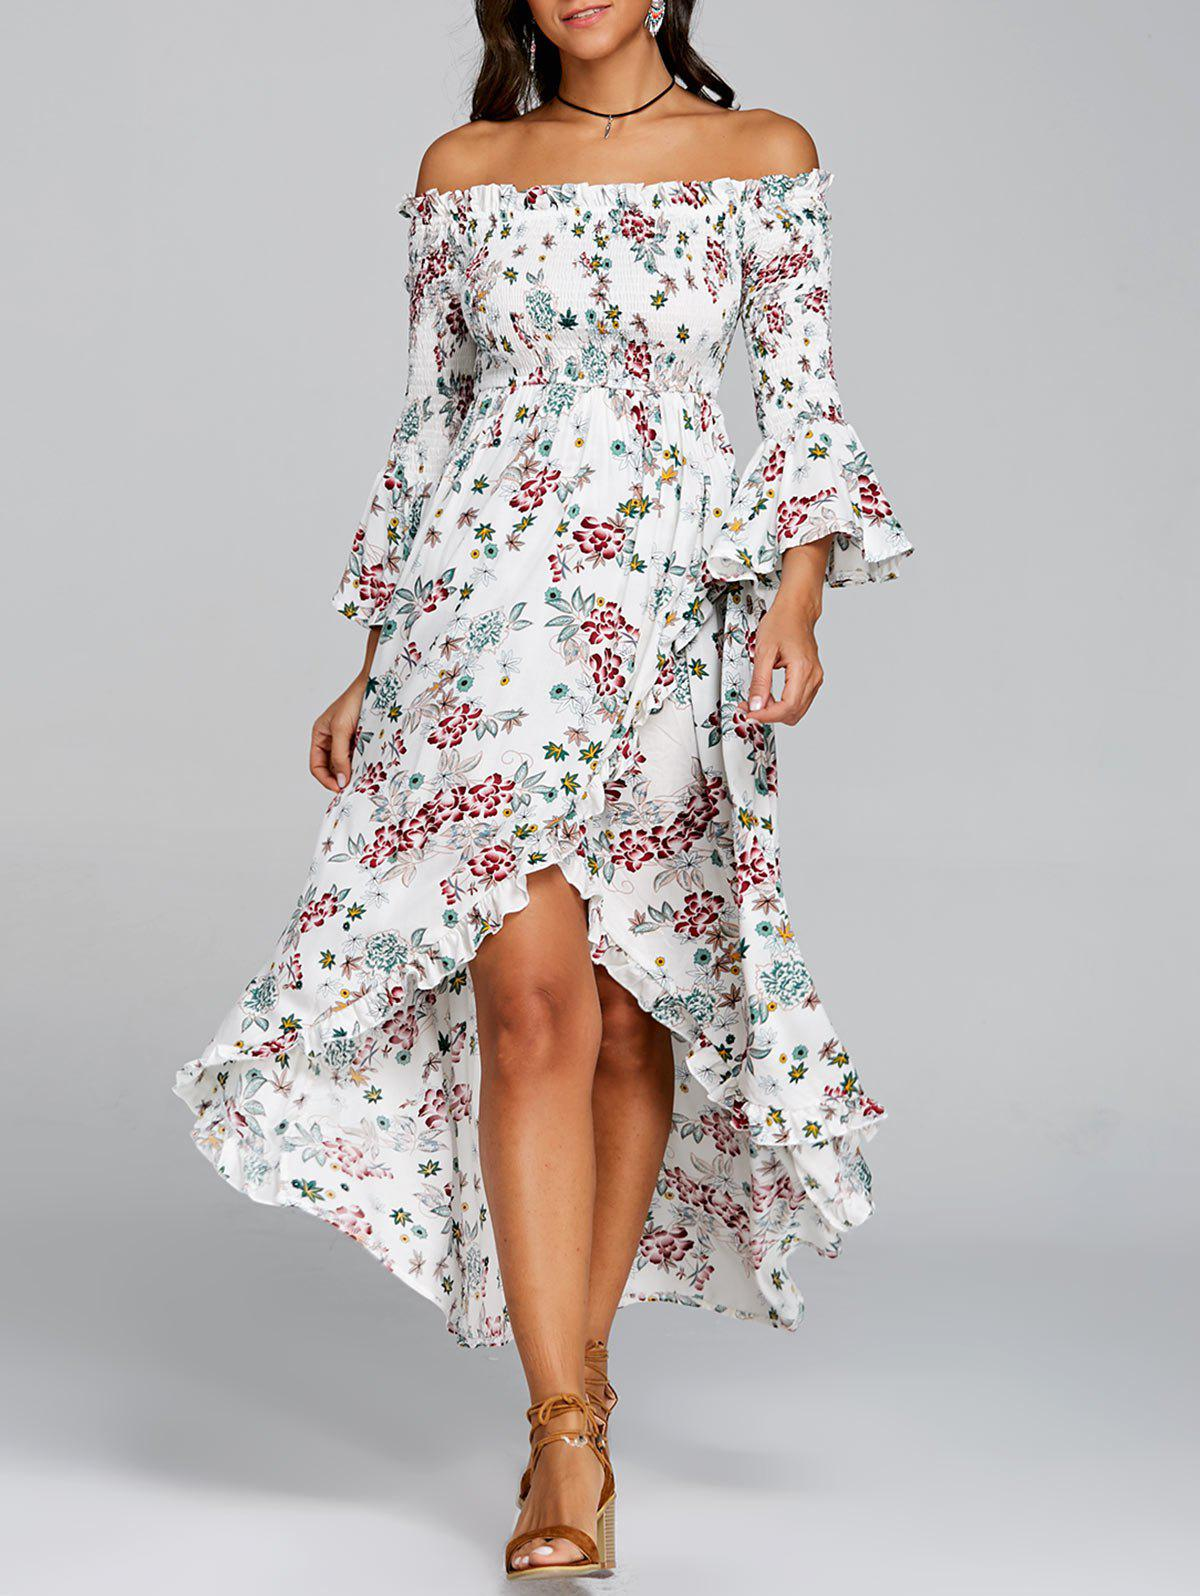 Floral Print Off The Shoulder Midi Dress - WHITE L